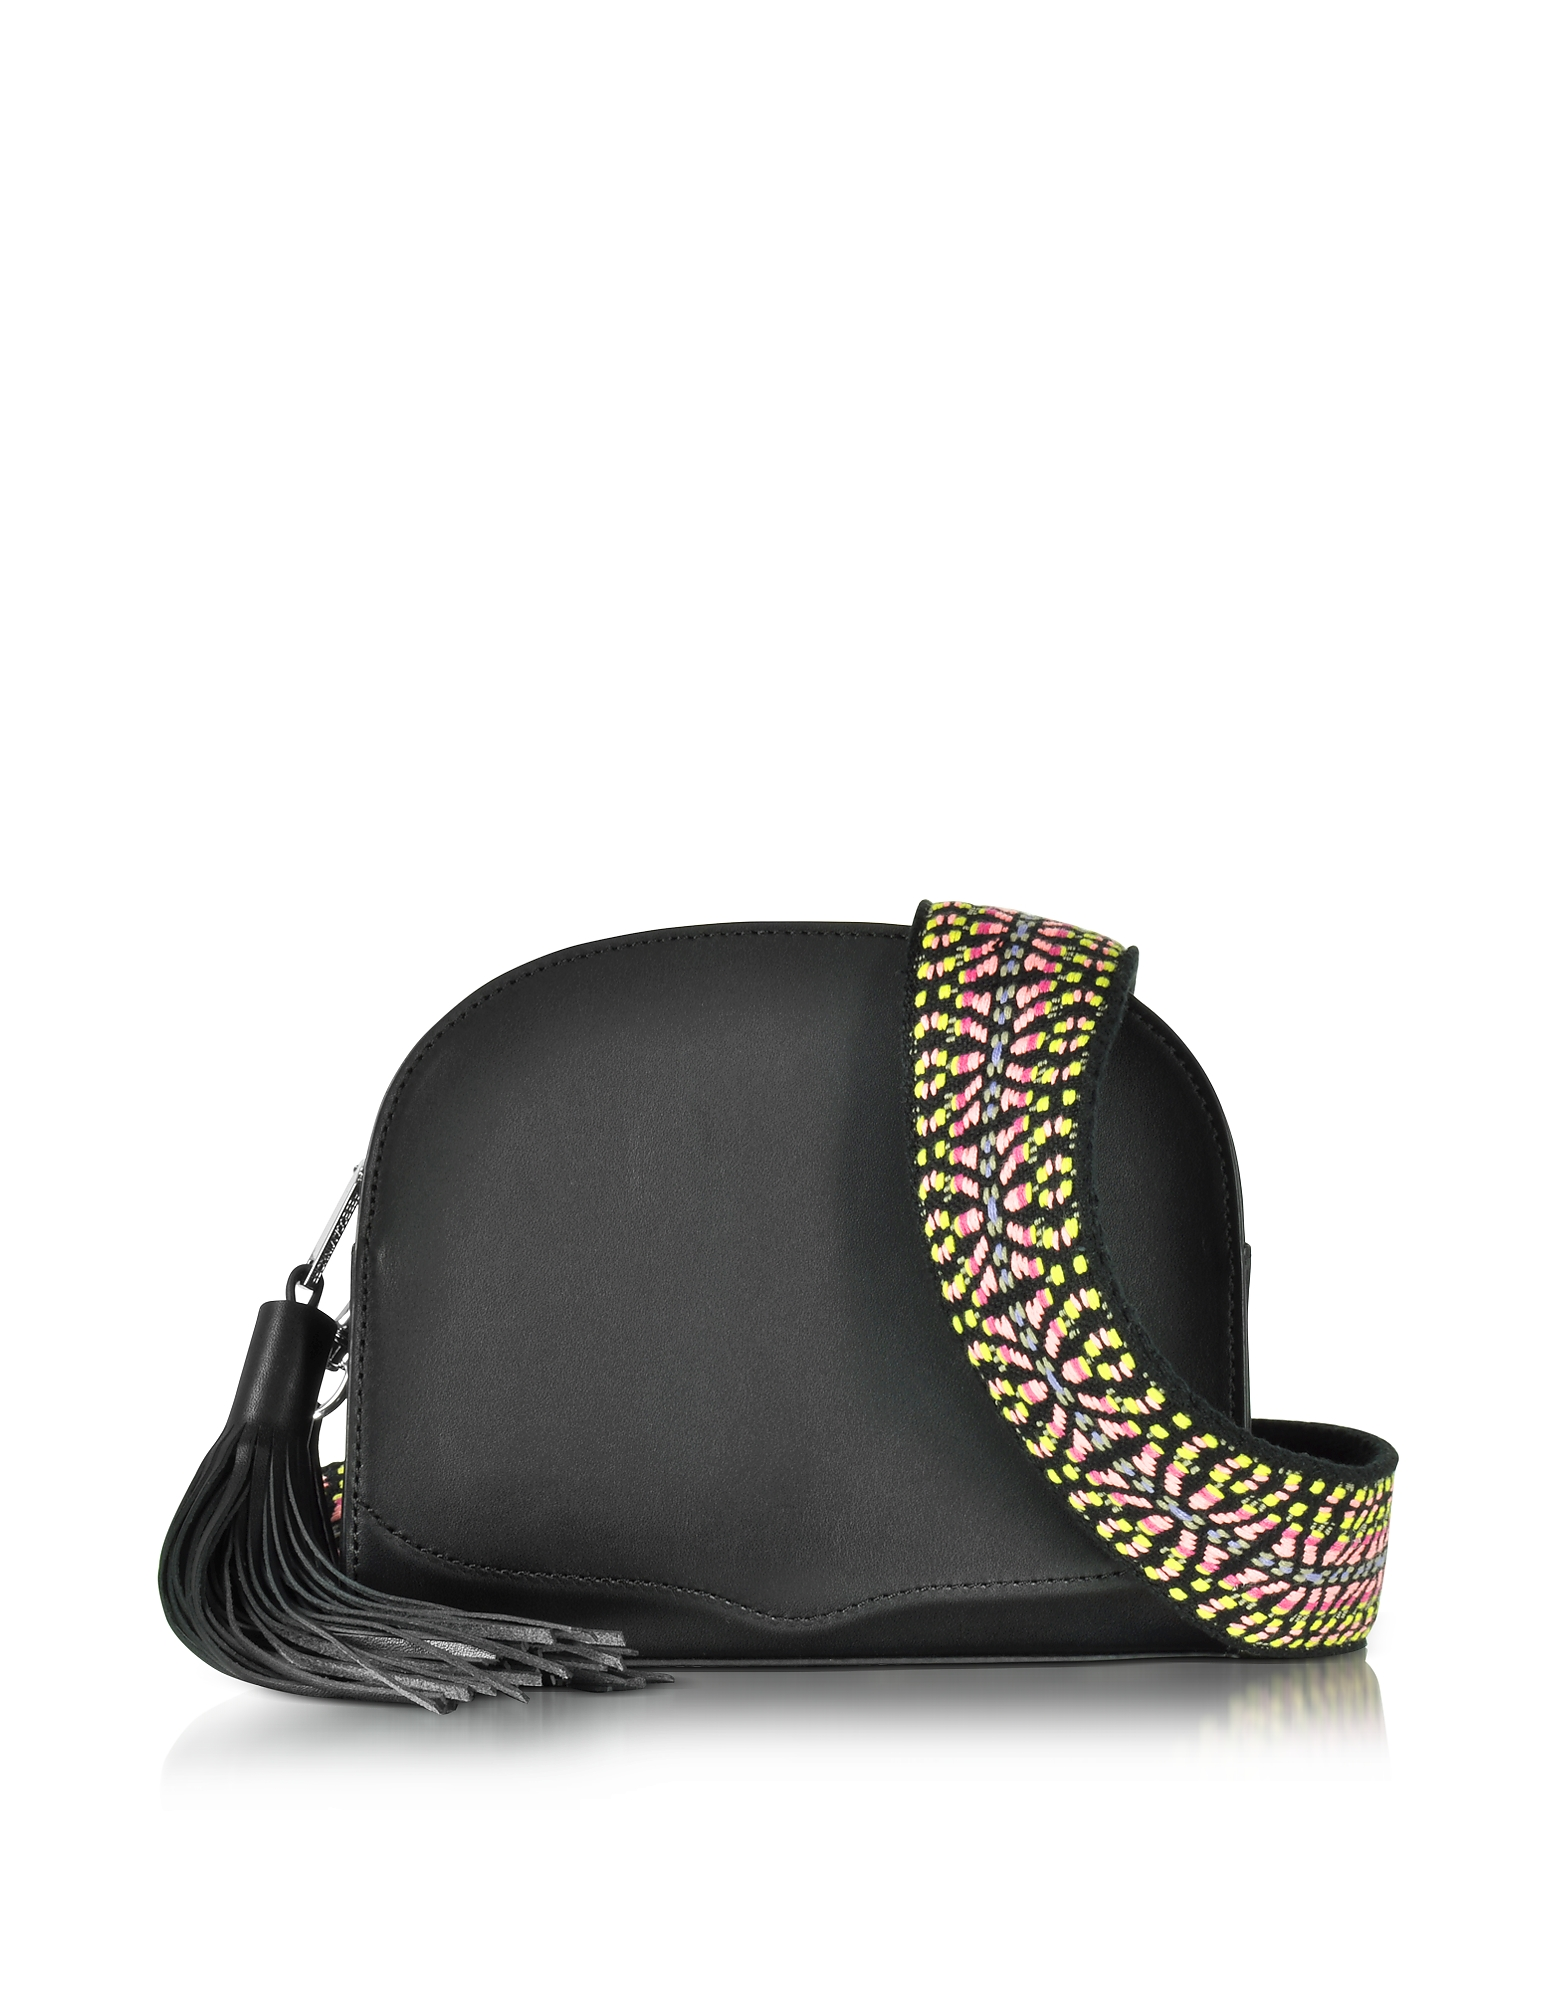 Rebecca Minkoff Black Leather Sunday Moon Crossbody Bag